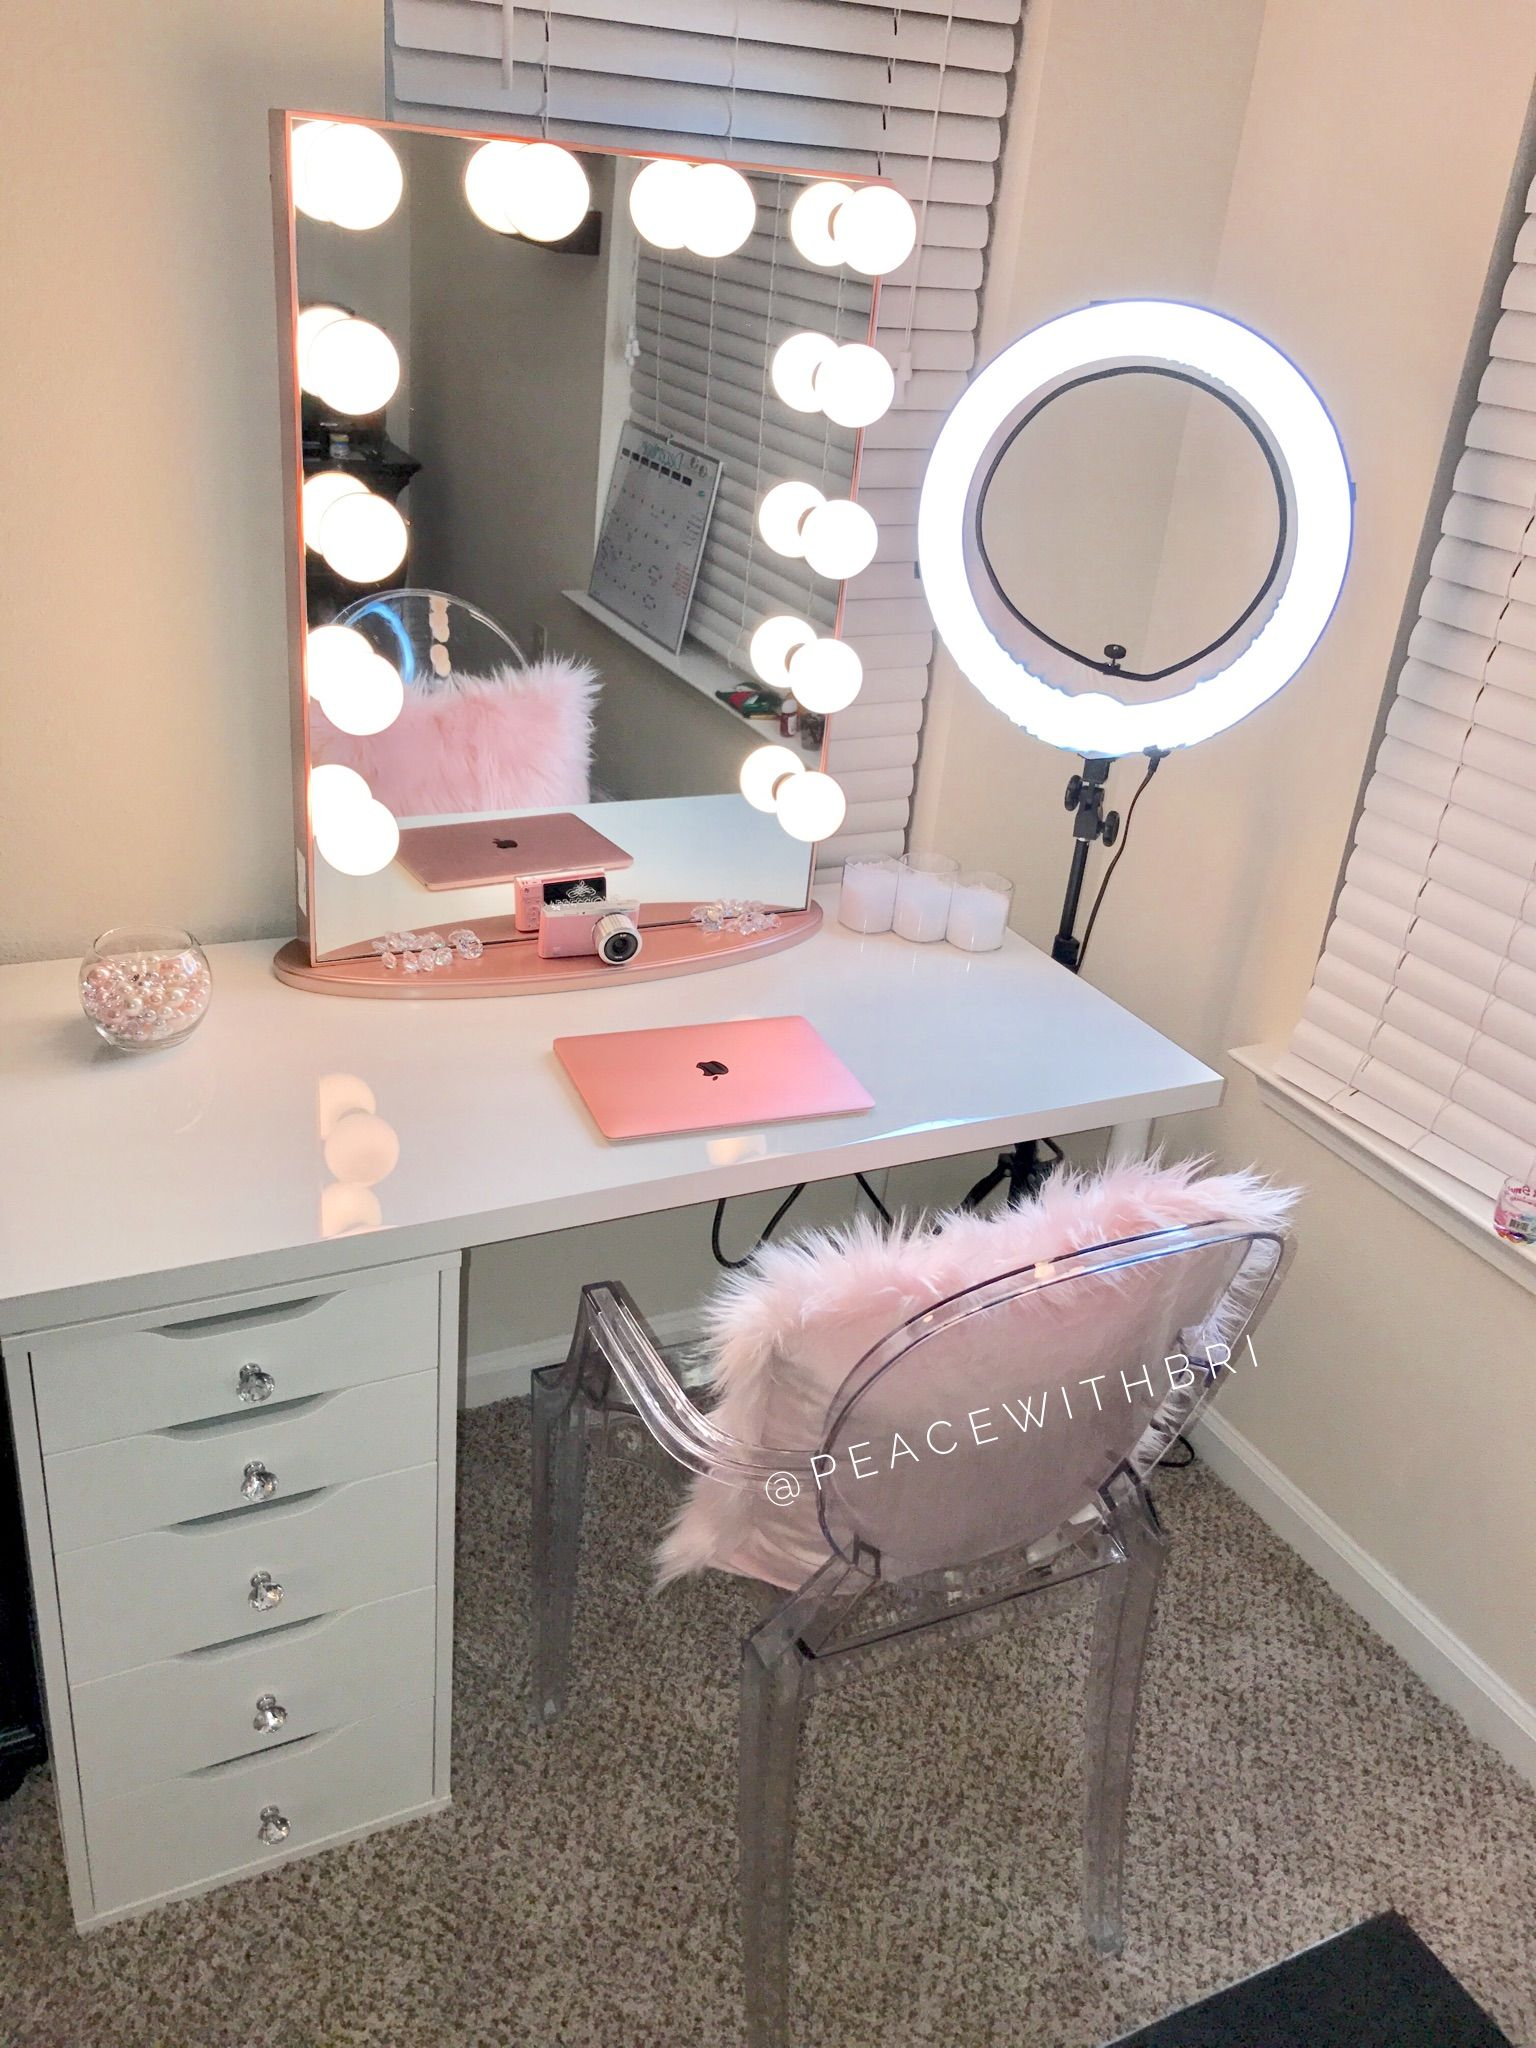 vanity ideas splendent impressions gh homes and awesome organizerfor makeup magnificent cosmetic clear uncategorized bedroom counter organizer organiser